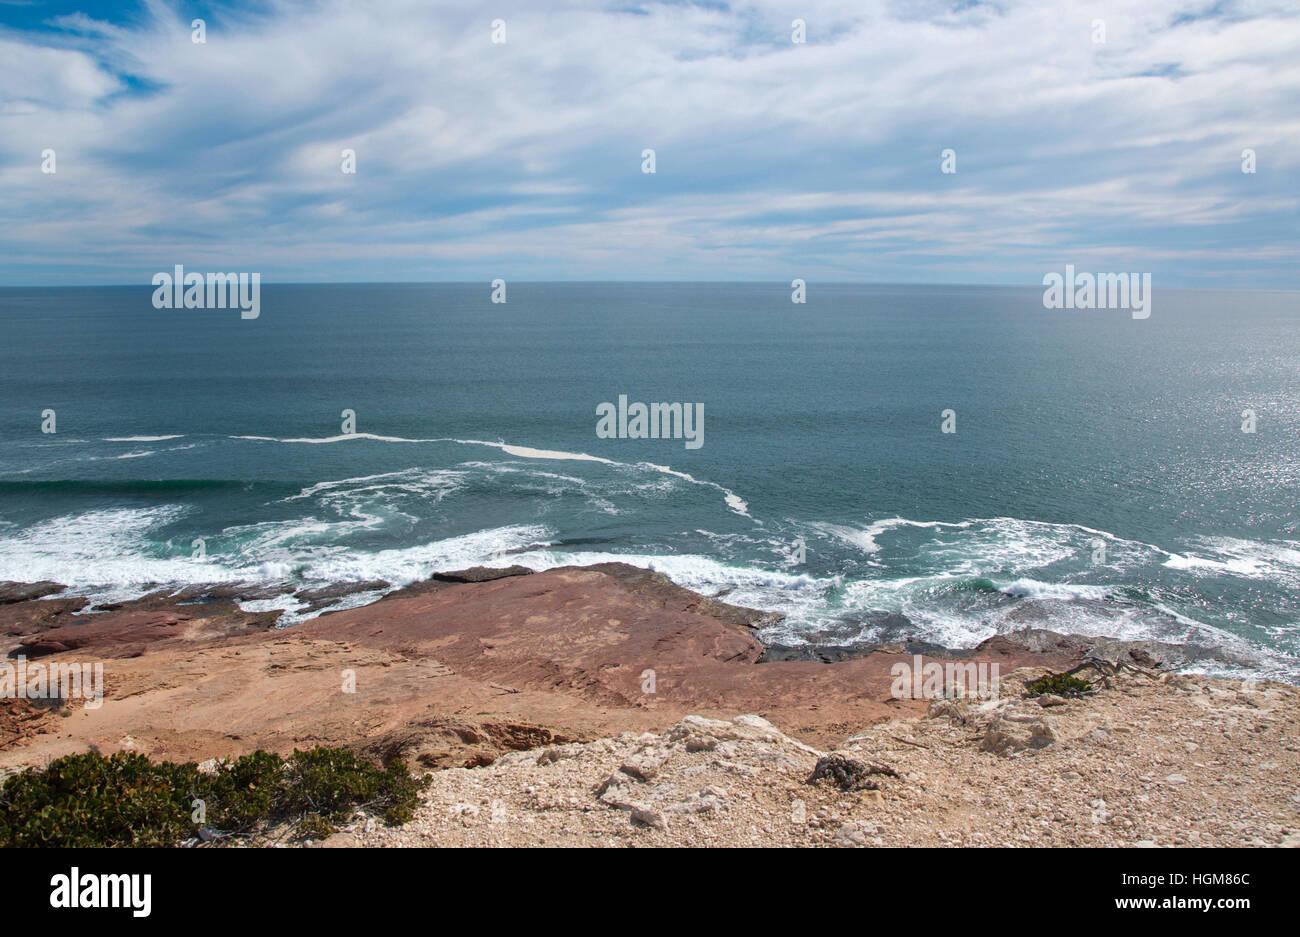 Cloudy skies over the turquoise Indian Ocean seascape and sandstone coast at Red Bluff in Kalbarri, Western Australia. - Stock Image